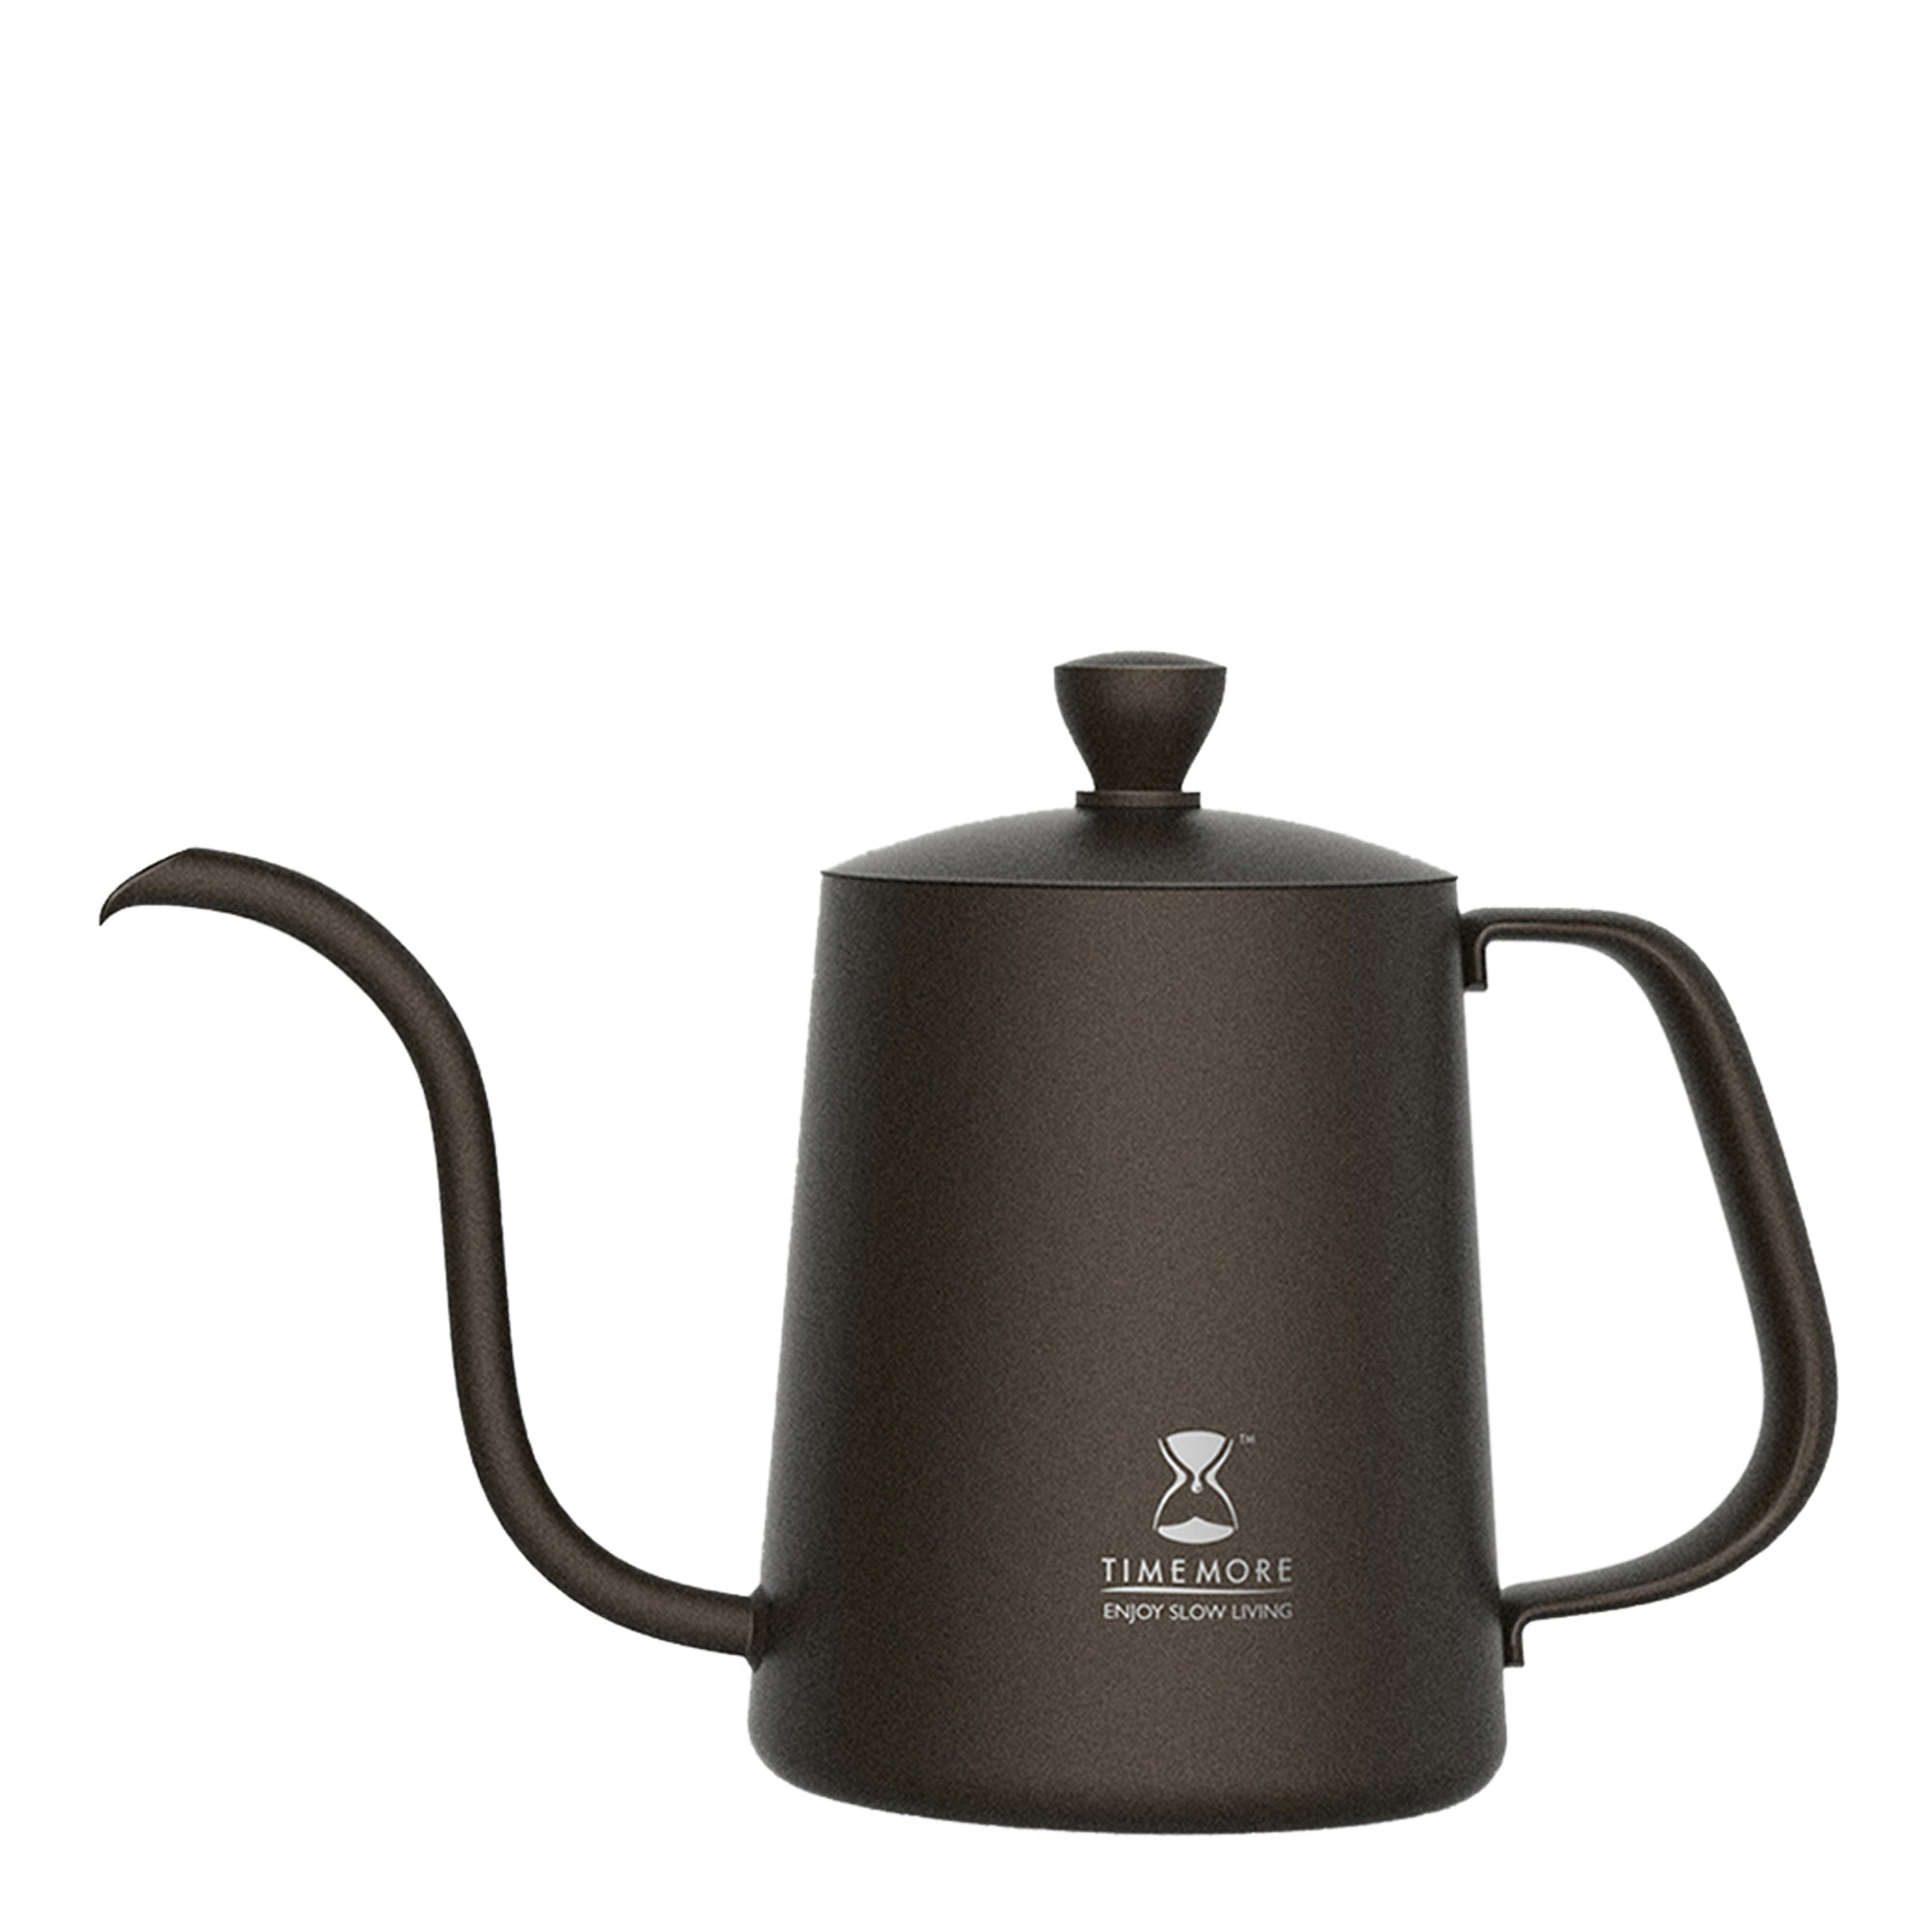 Timemore Fish Kettle 600ml - Espresso Gear